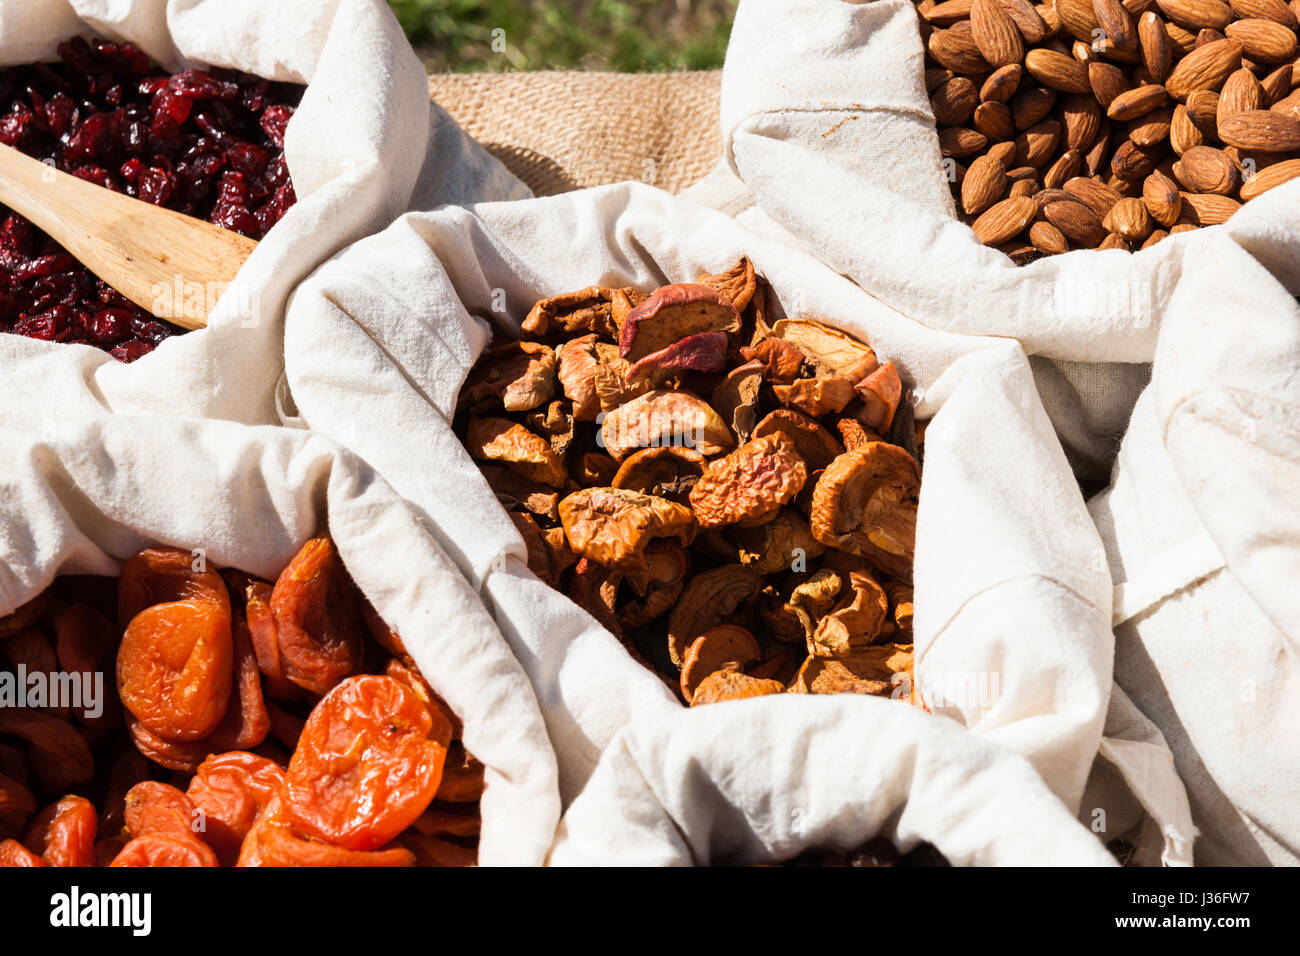 Dried apricots, apples, raisins and almond nuts in small white linen sacks on display for sale at local food fair. - Stock Image